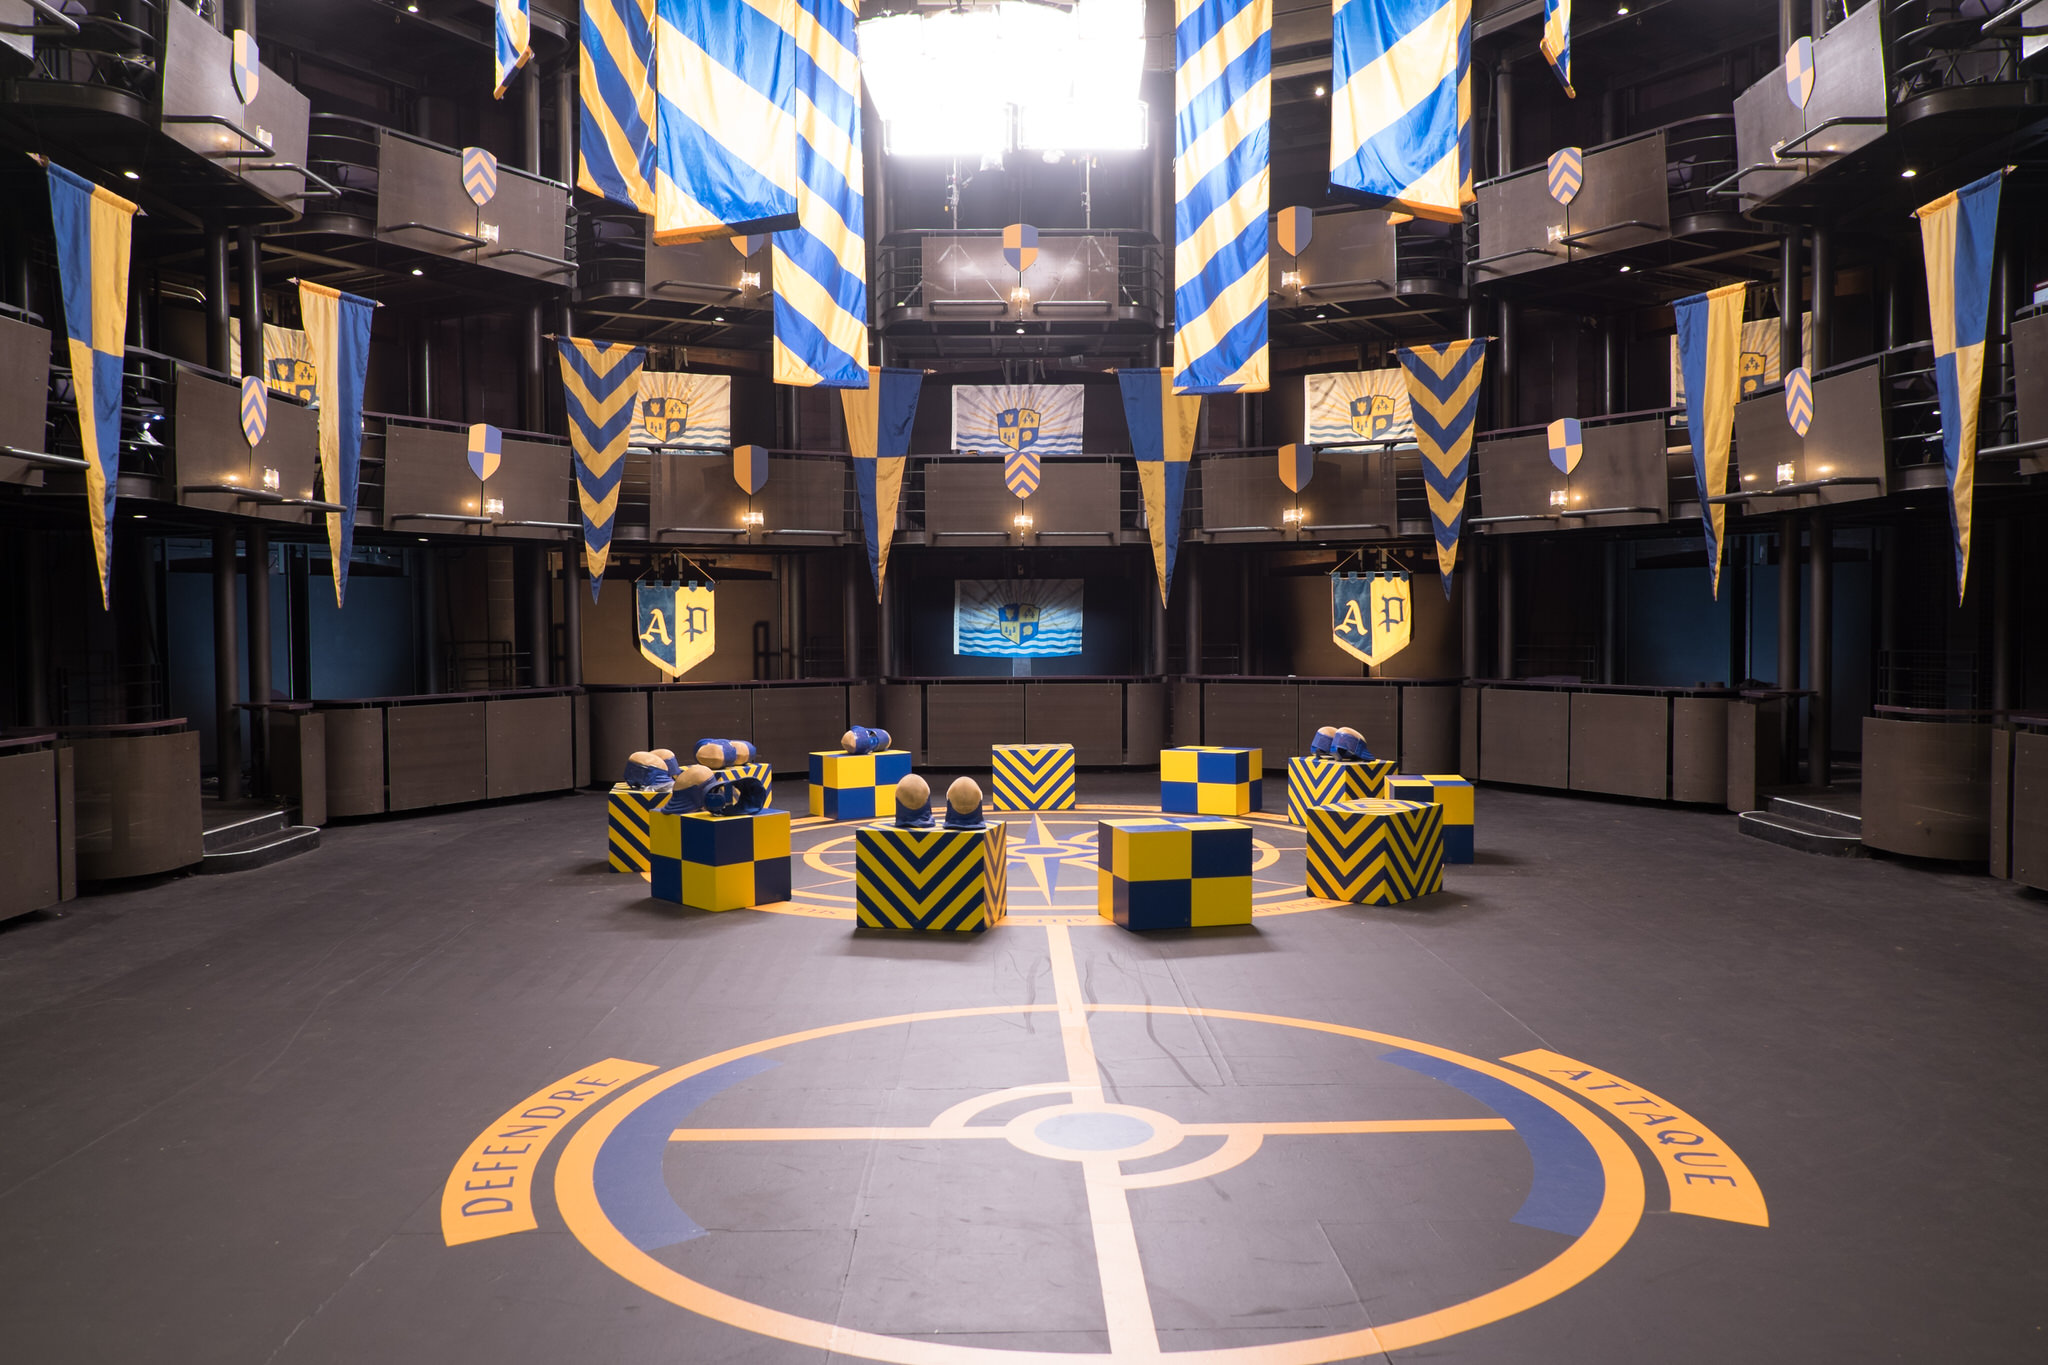 Like Tourney in the first Descendants movie, Descendants 2 required us to invent another sport of chivalry and tactics. ROAR is a stadium style team fencing game fought in close quarters.